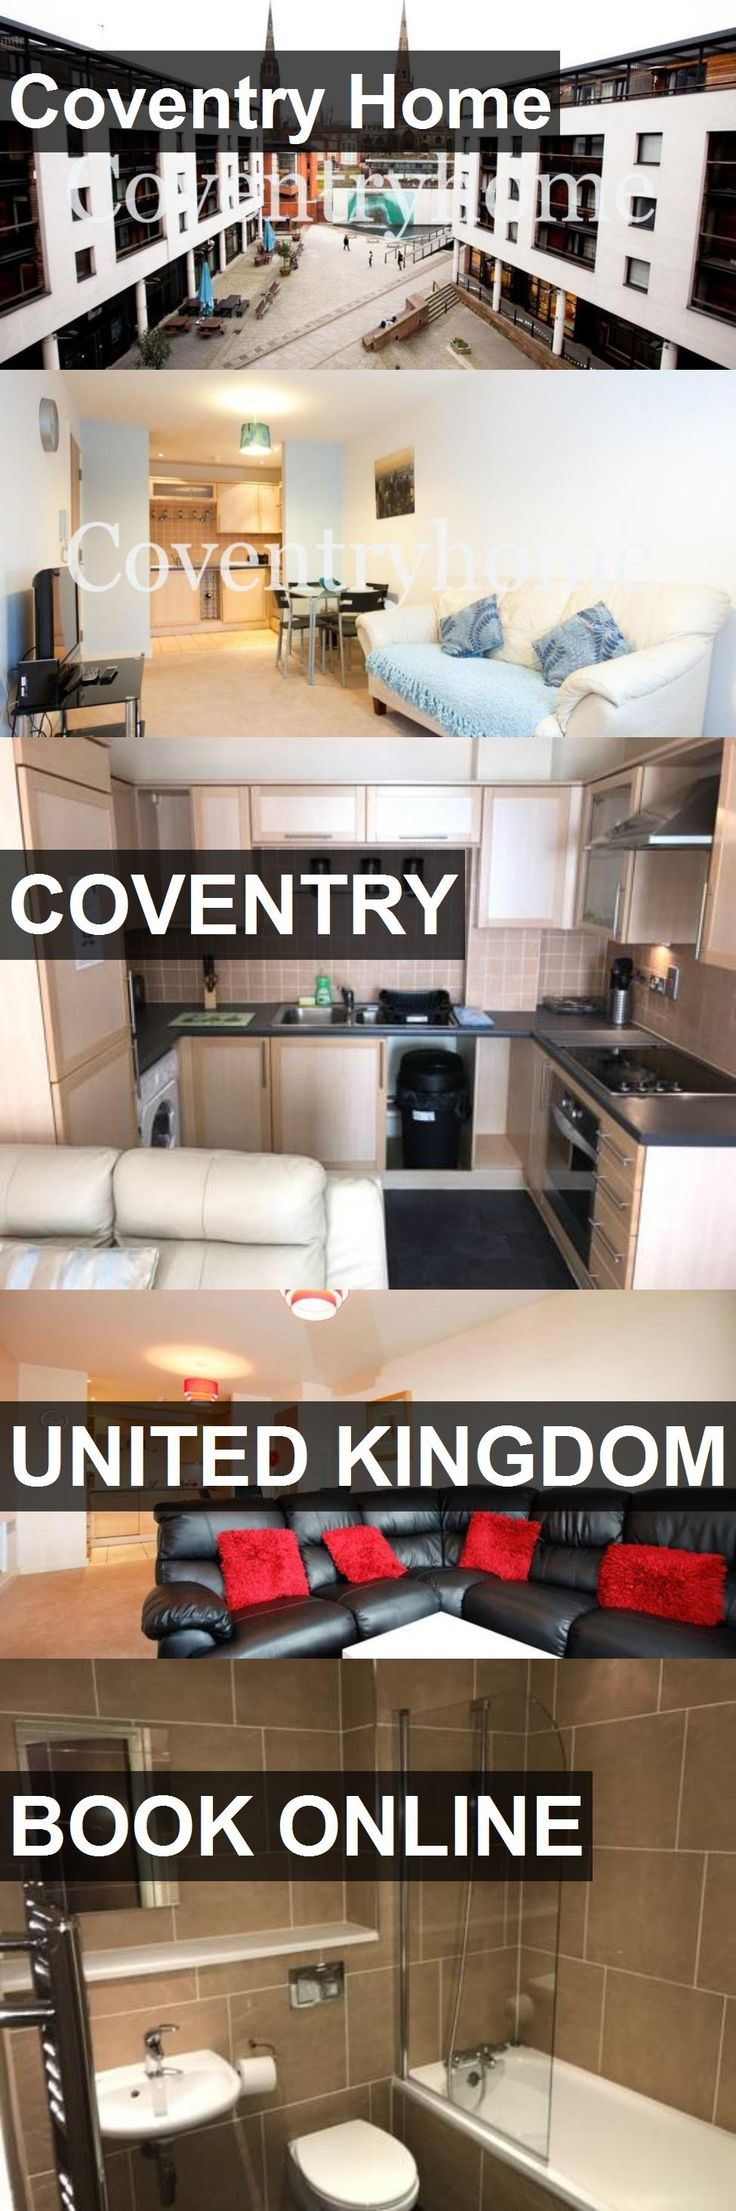 Hotel Coventry Home in Coventry, United Kingdom. For more information, photos, reviews and best prices please follow the link. #UnitedKingdom #Coventry #CoventryHome #hotel #travel #vacation